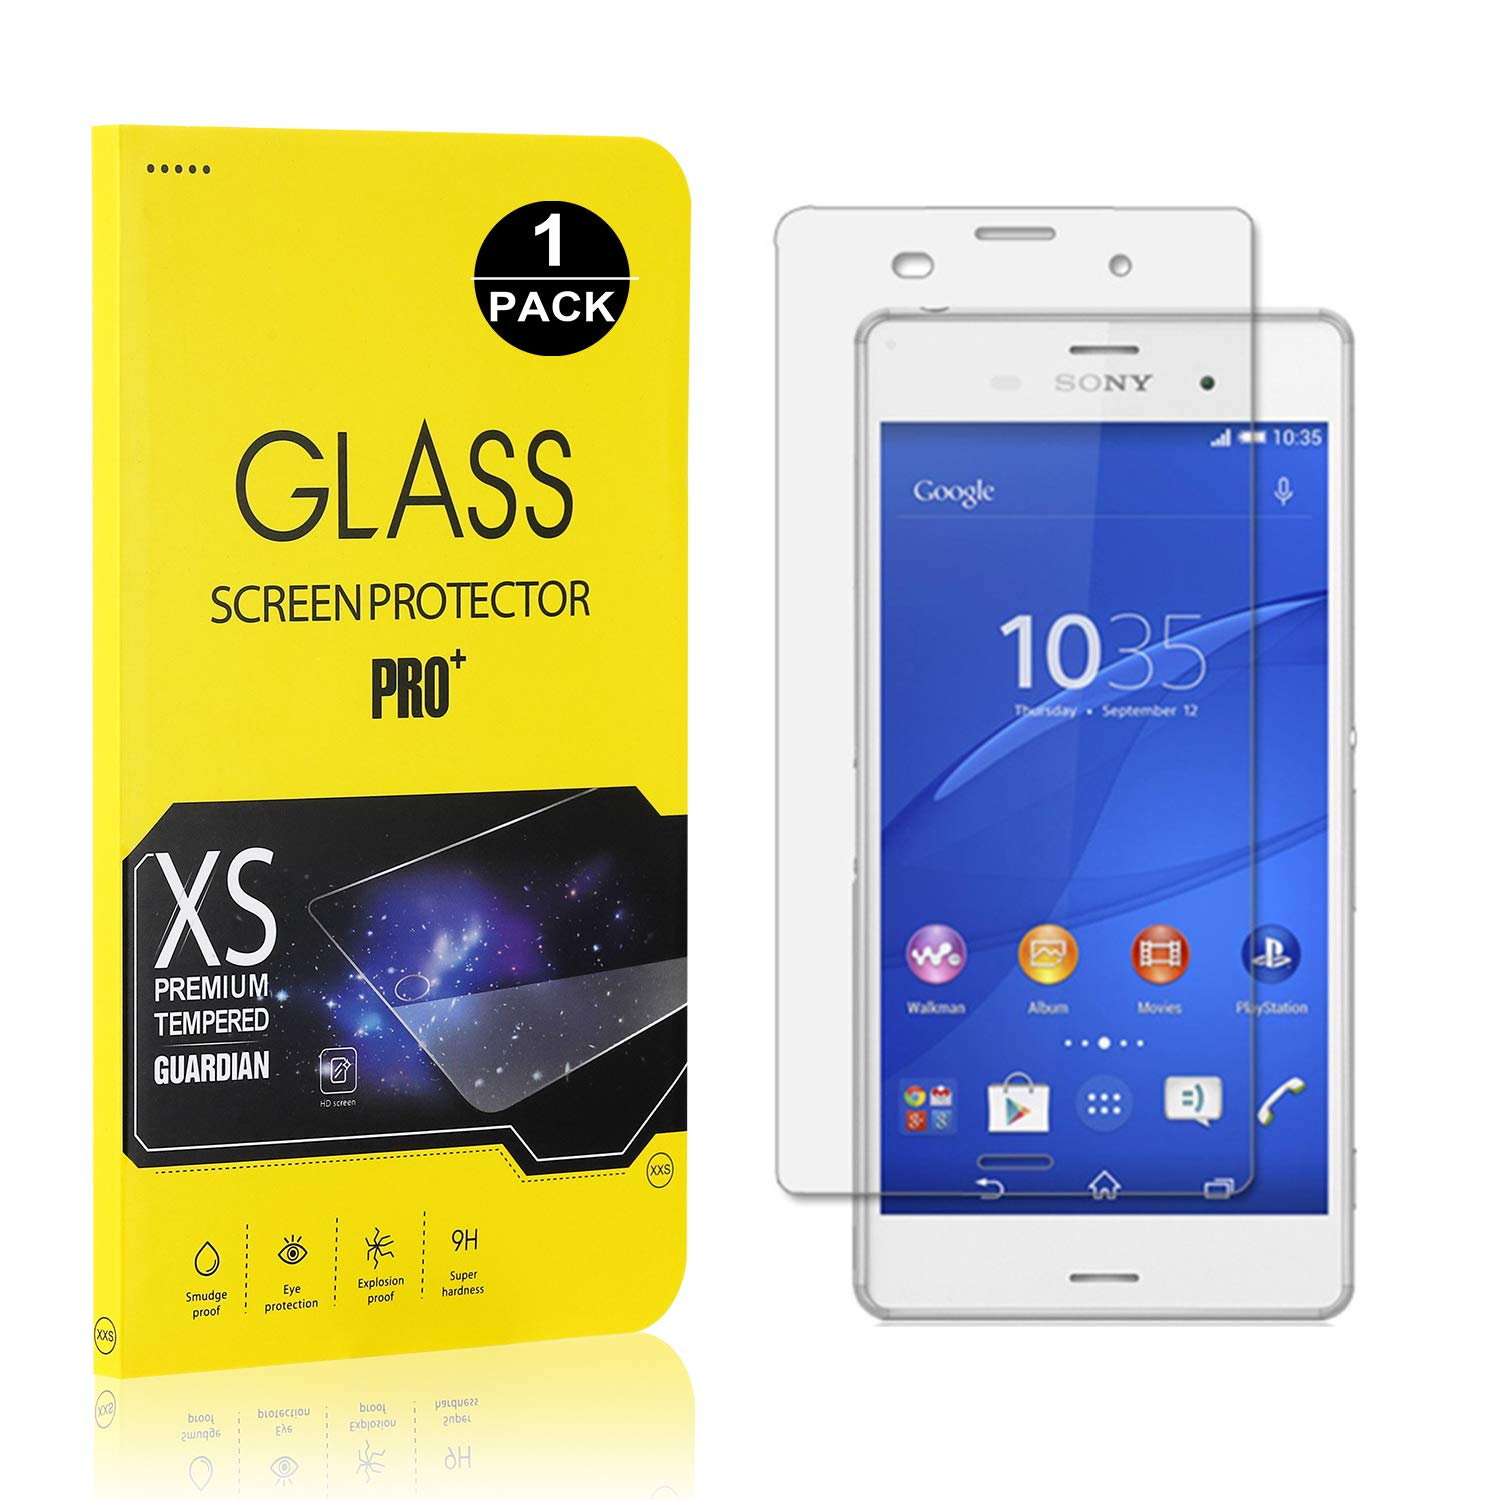 UNEXTATI Anti Scratch Tempered Glass Screen Protector Film for Sony Xperia Z3 1 Pack Screen Protector Compatible with Xperia Z3